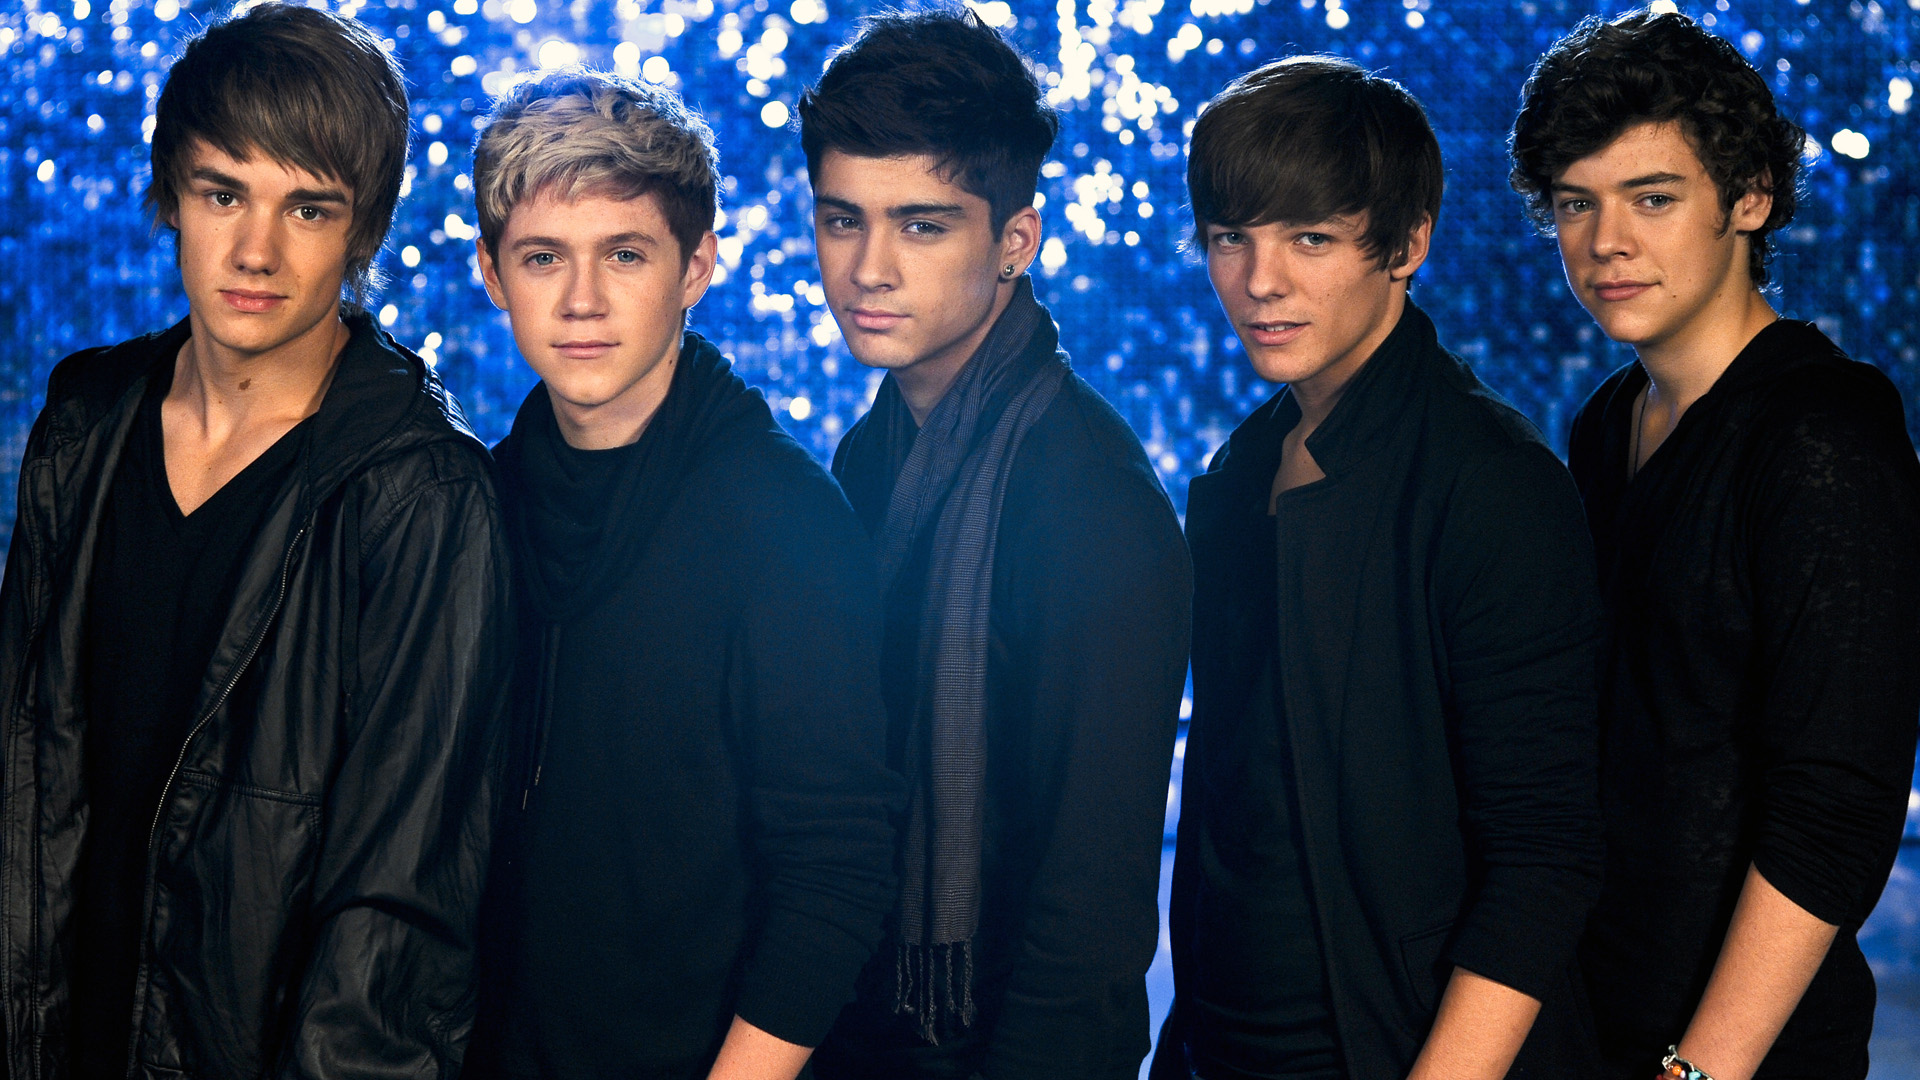 One Direction Hd Wallpaper Background Image 1920x1080 Id